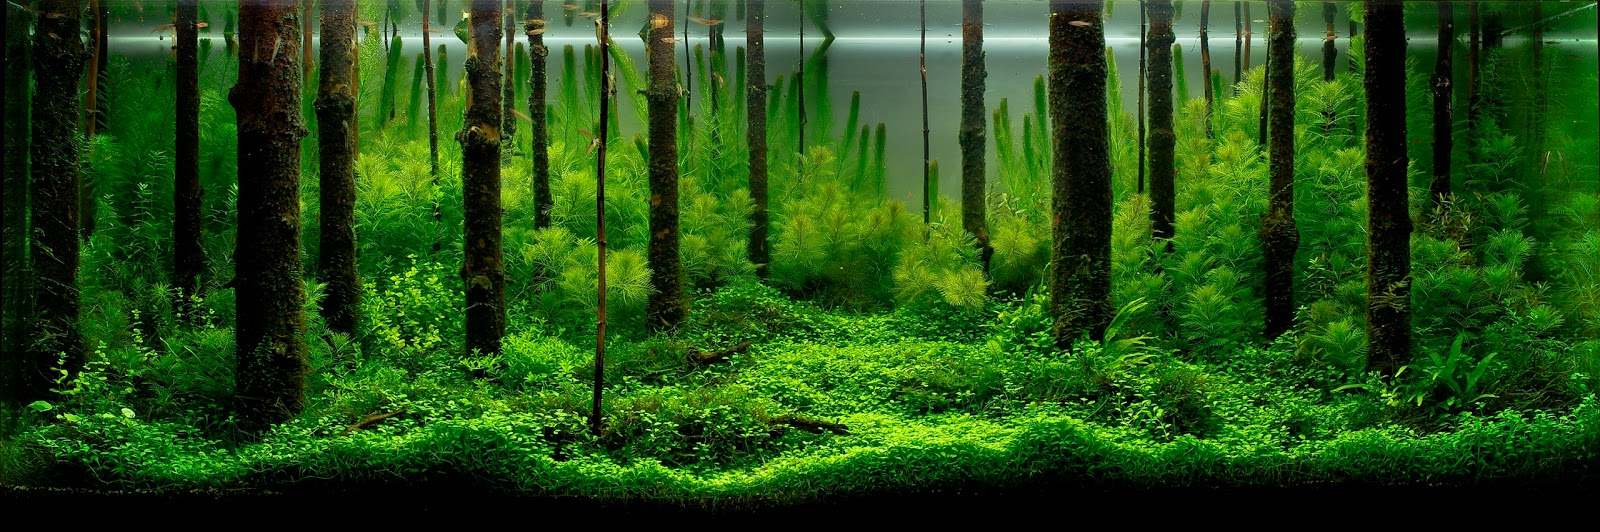 Pavel Bautins First Place 2010 IAPLC Aquascape